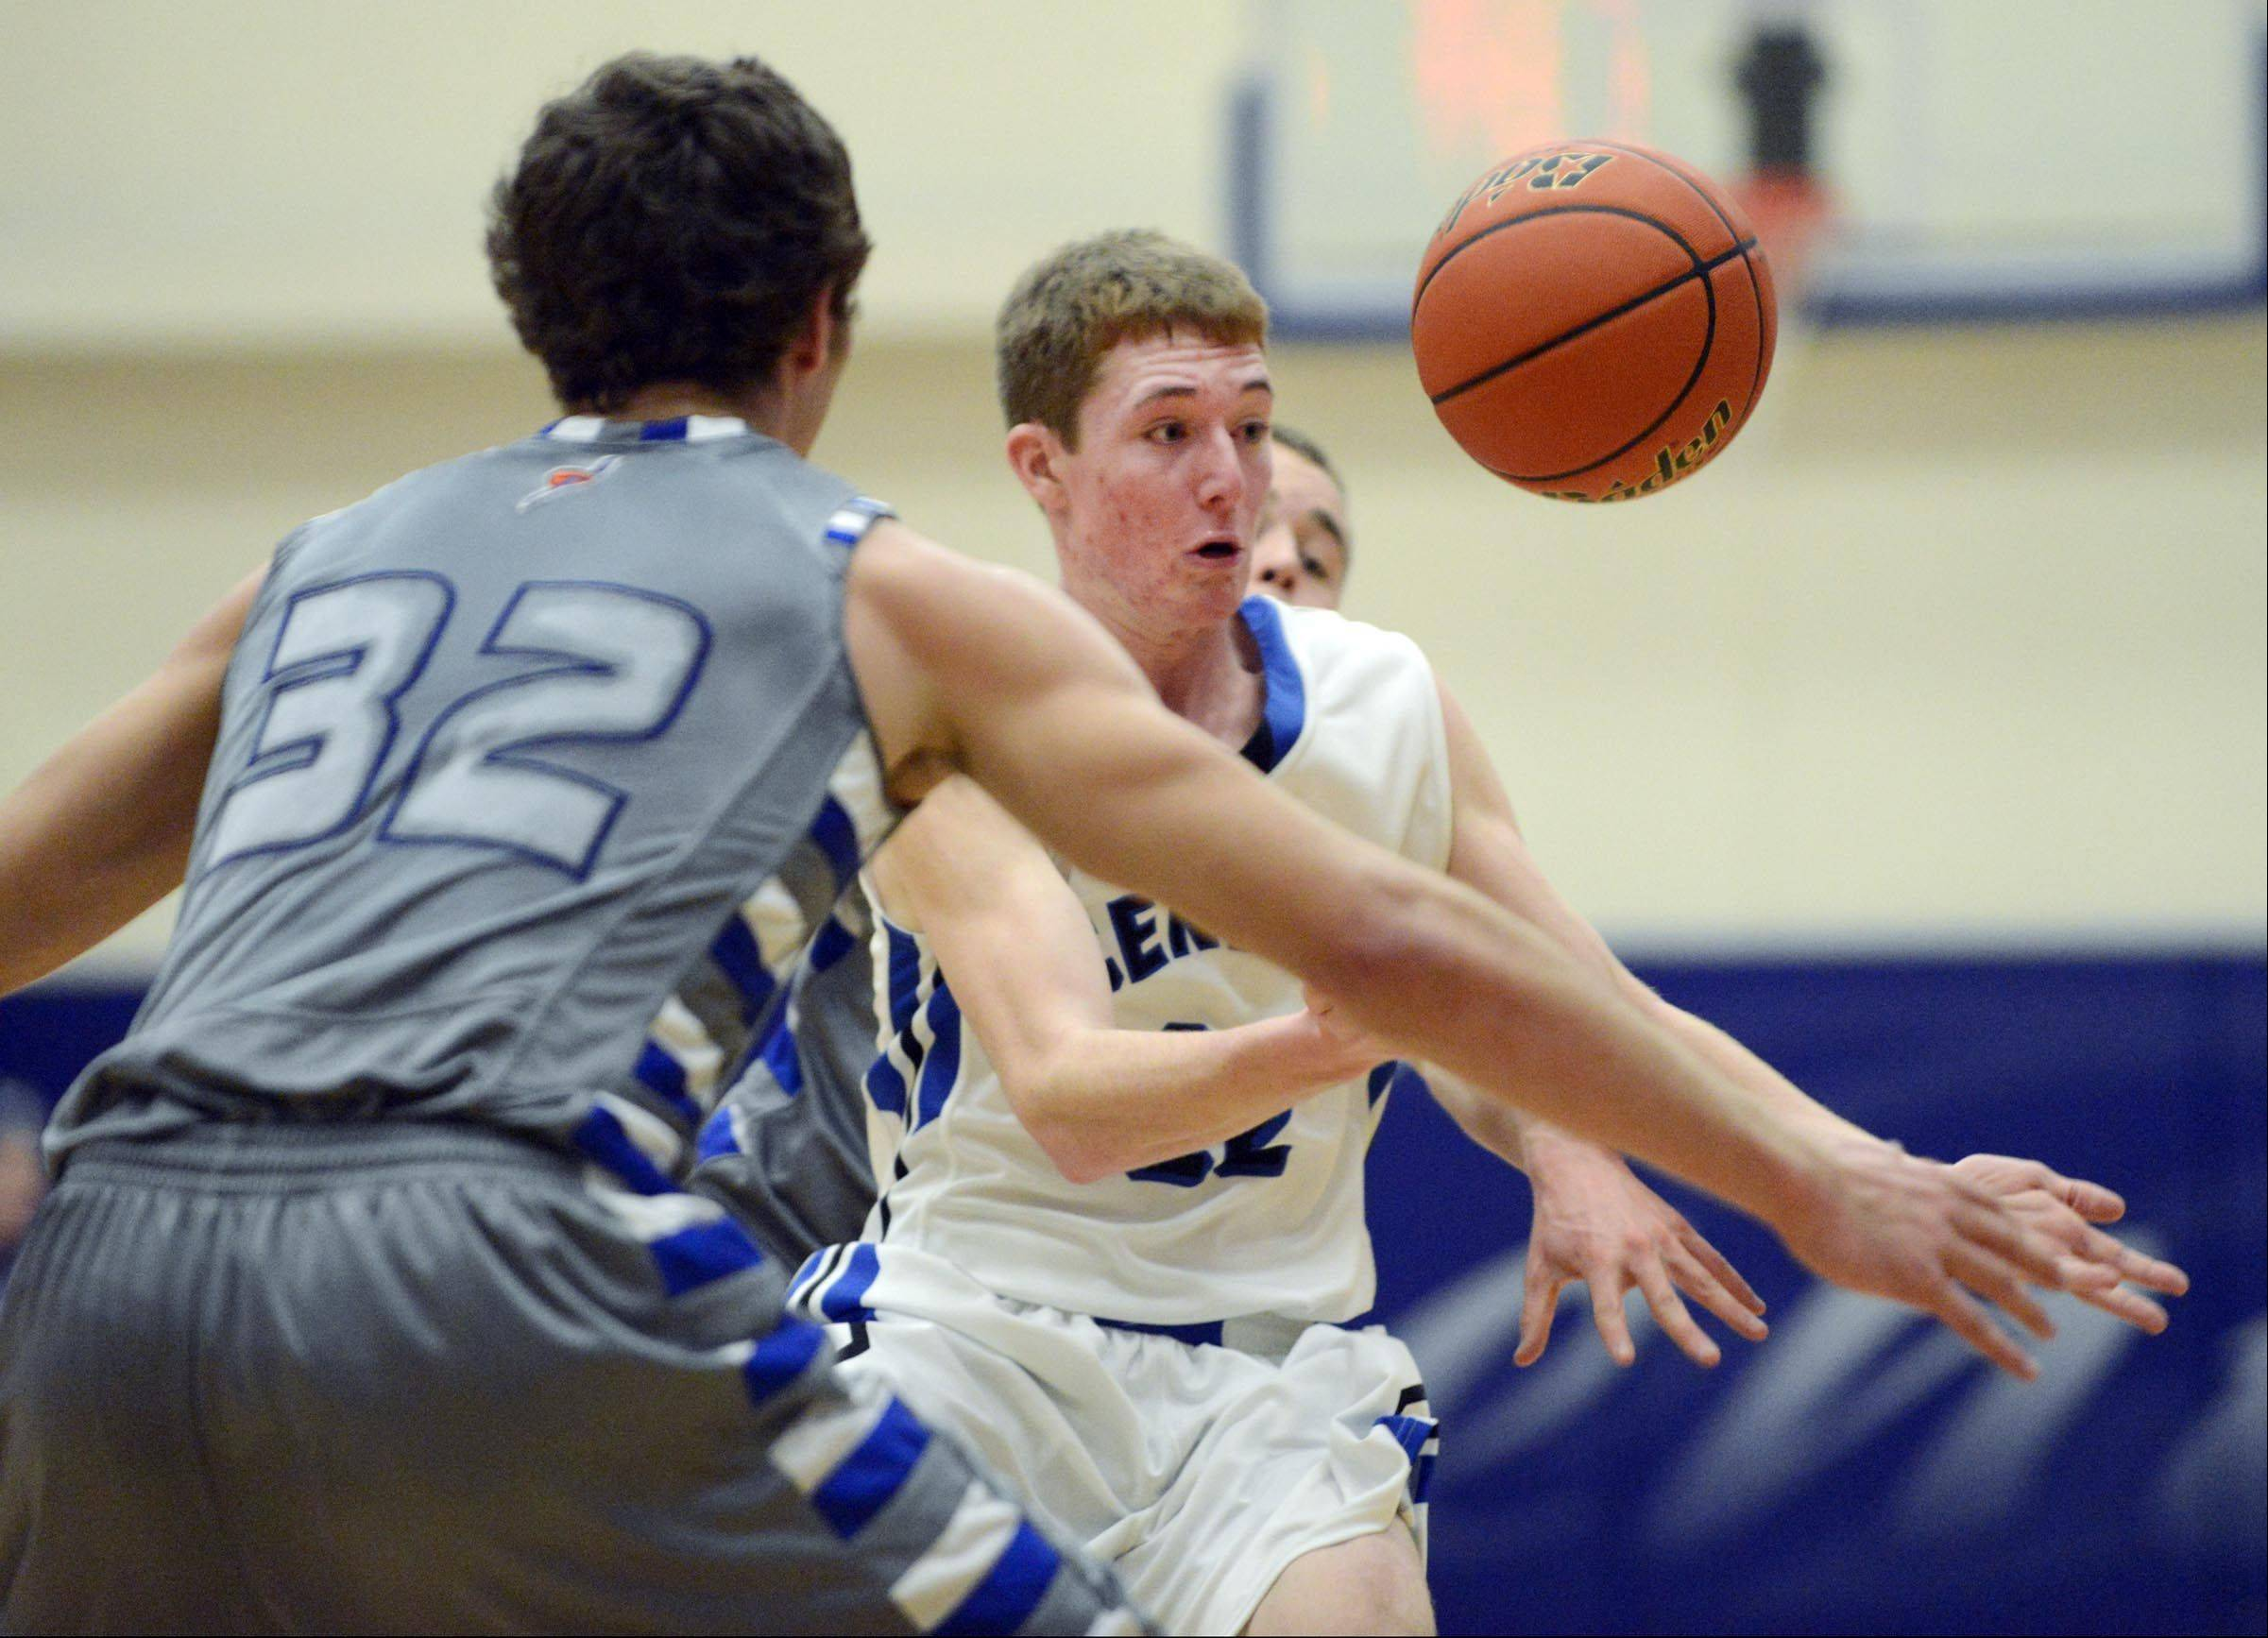 Images from the Woodstock vs. Burlington Central boys basketball game Wednesday, January 15, 2014.